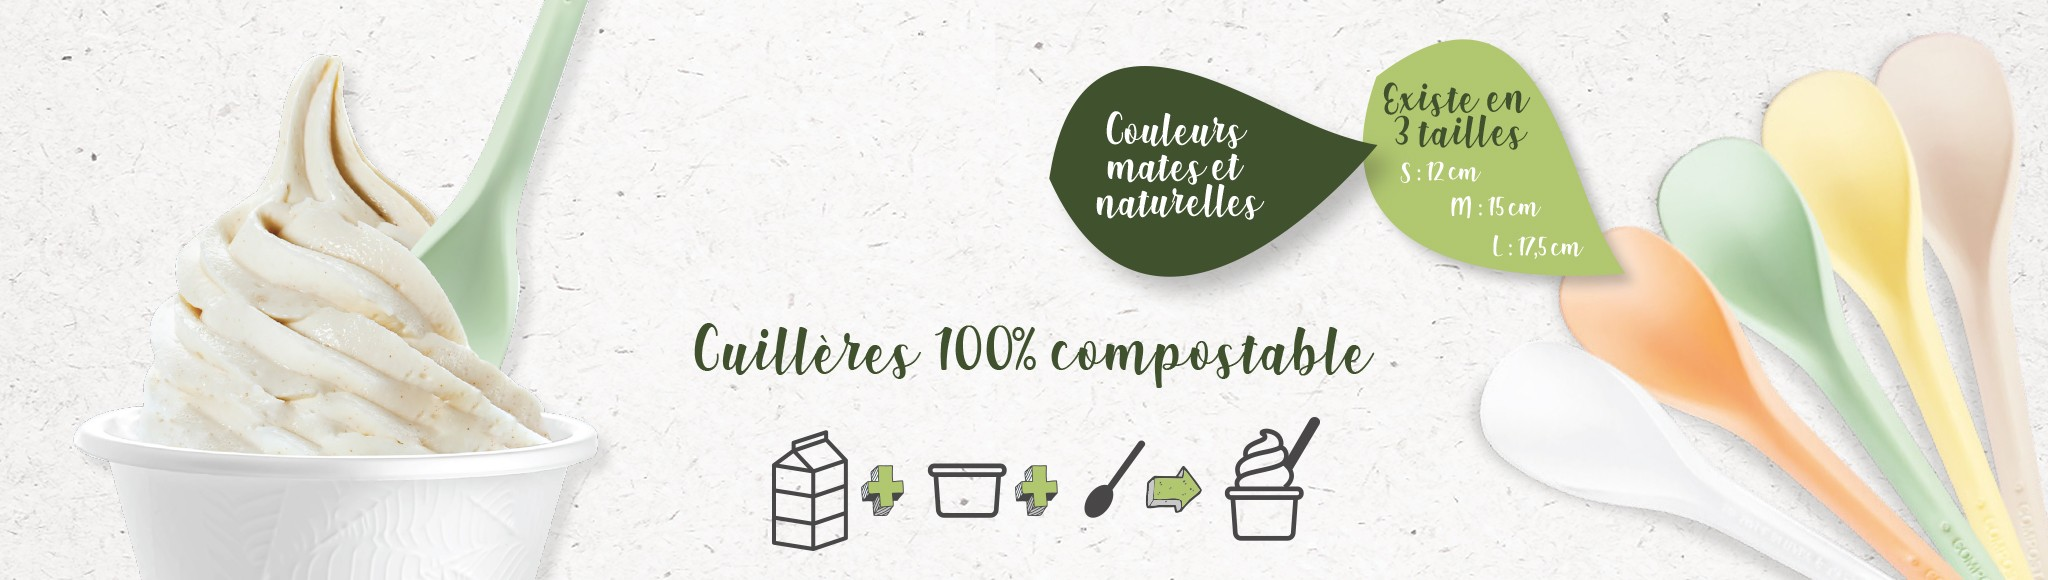 Cuillères 100% compostables